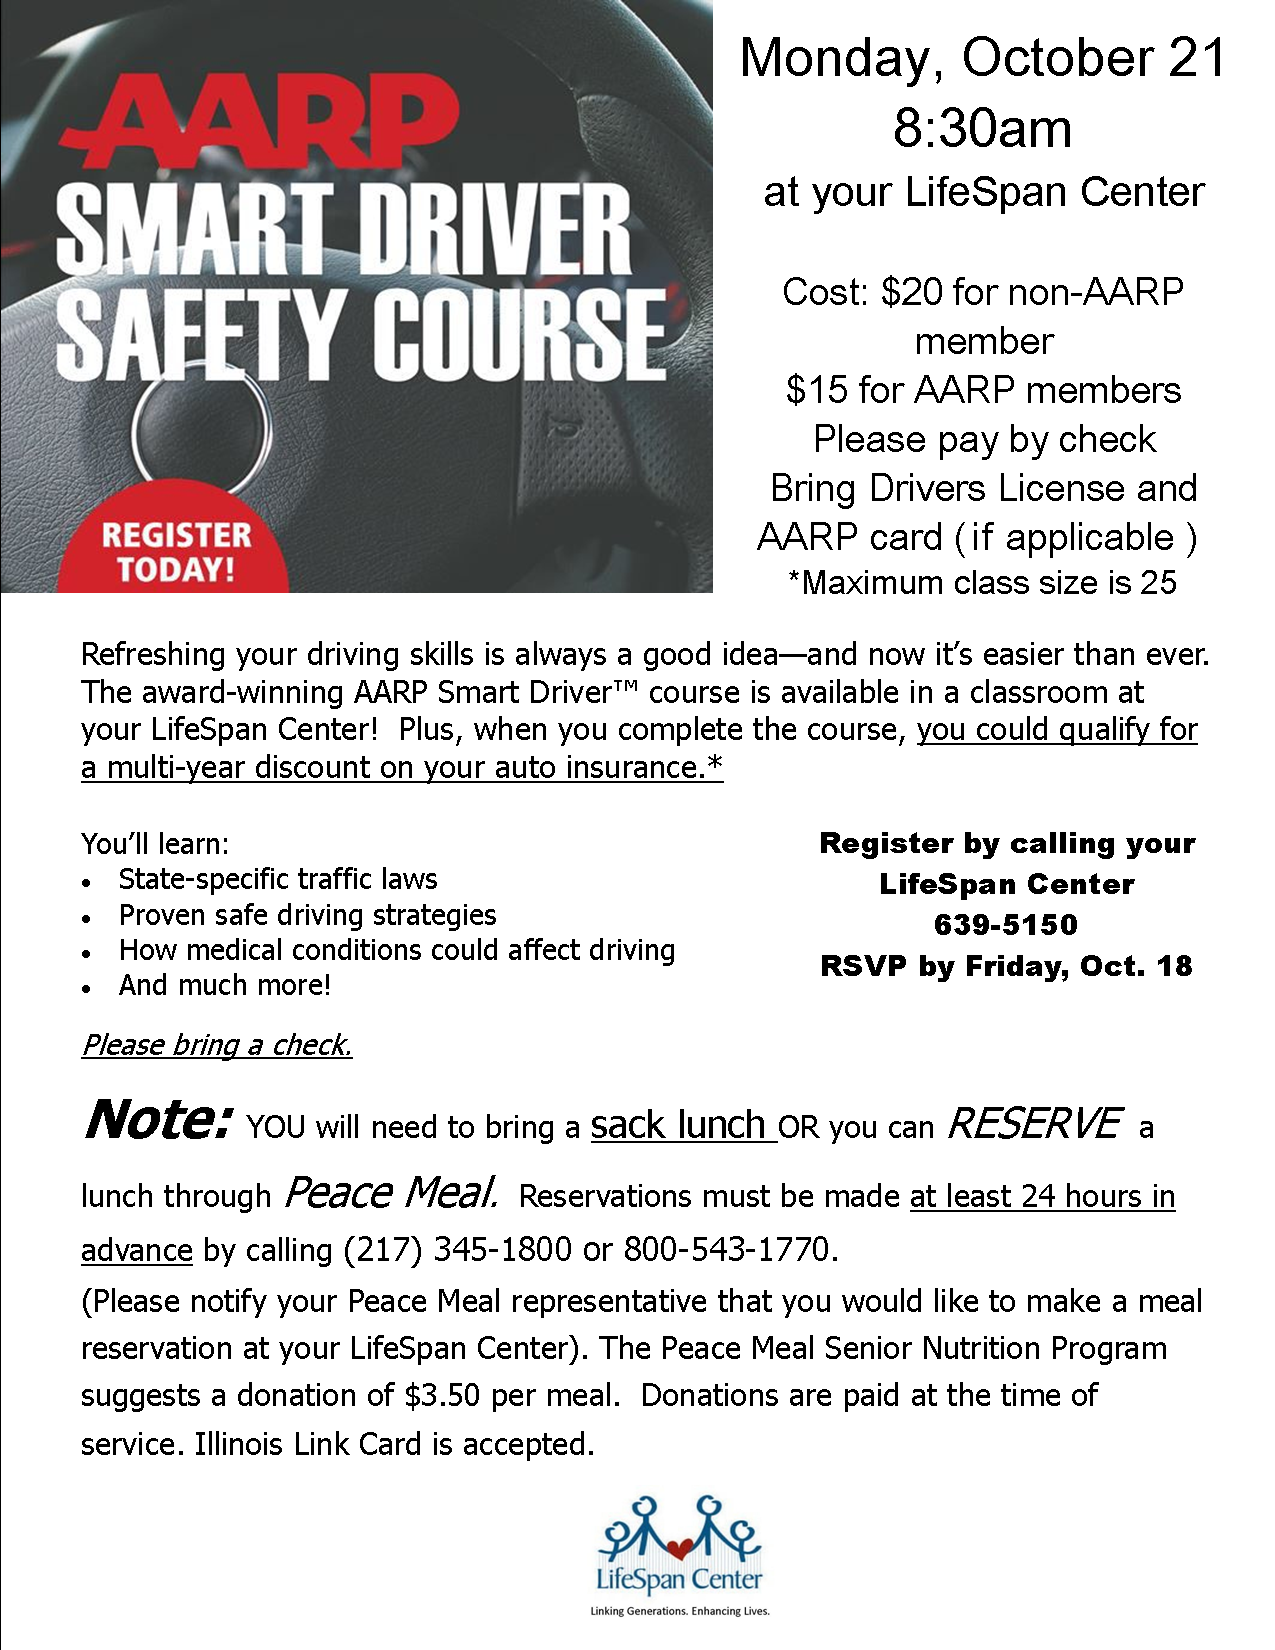 AARP_Smart_Driver_course97413.png